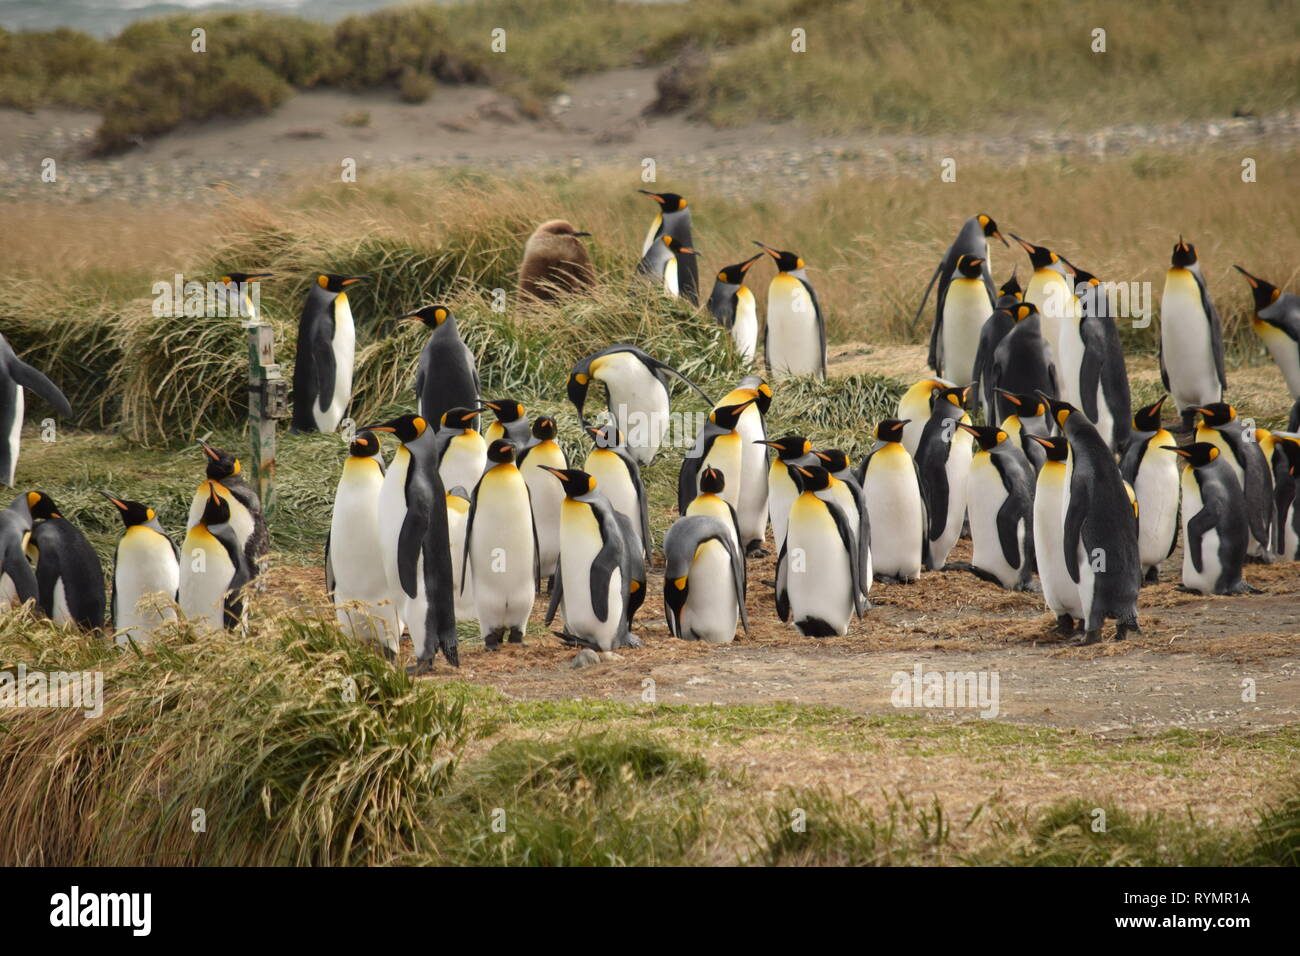 Penguins in Punta Arena, Patagonia, Argentina, South America Stock Photo